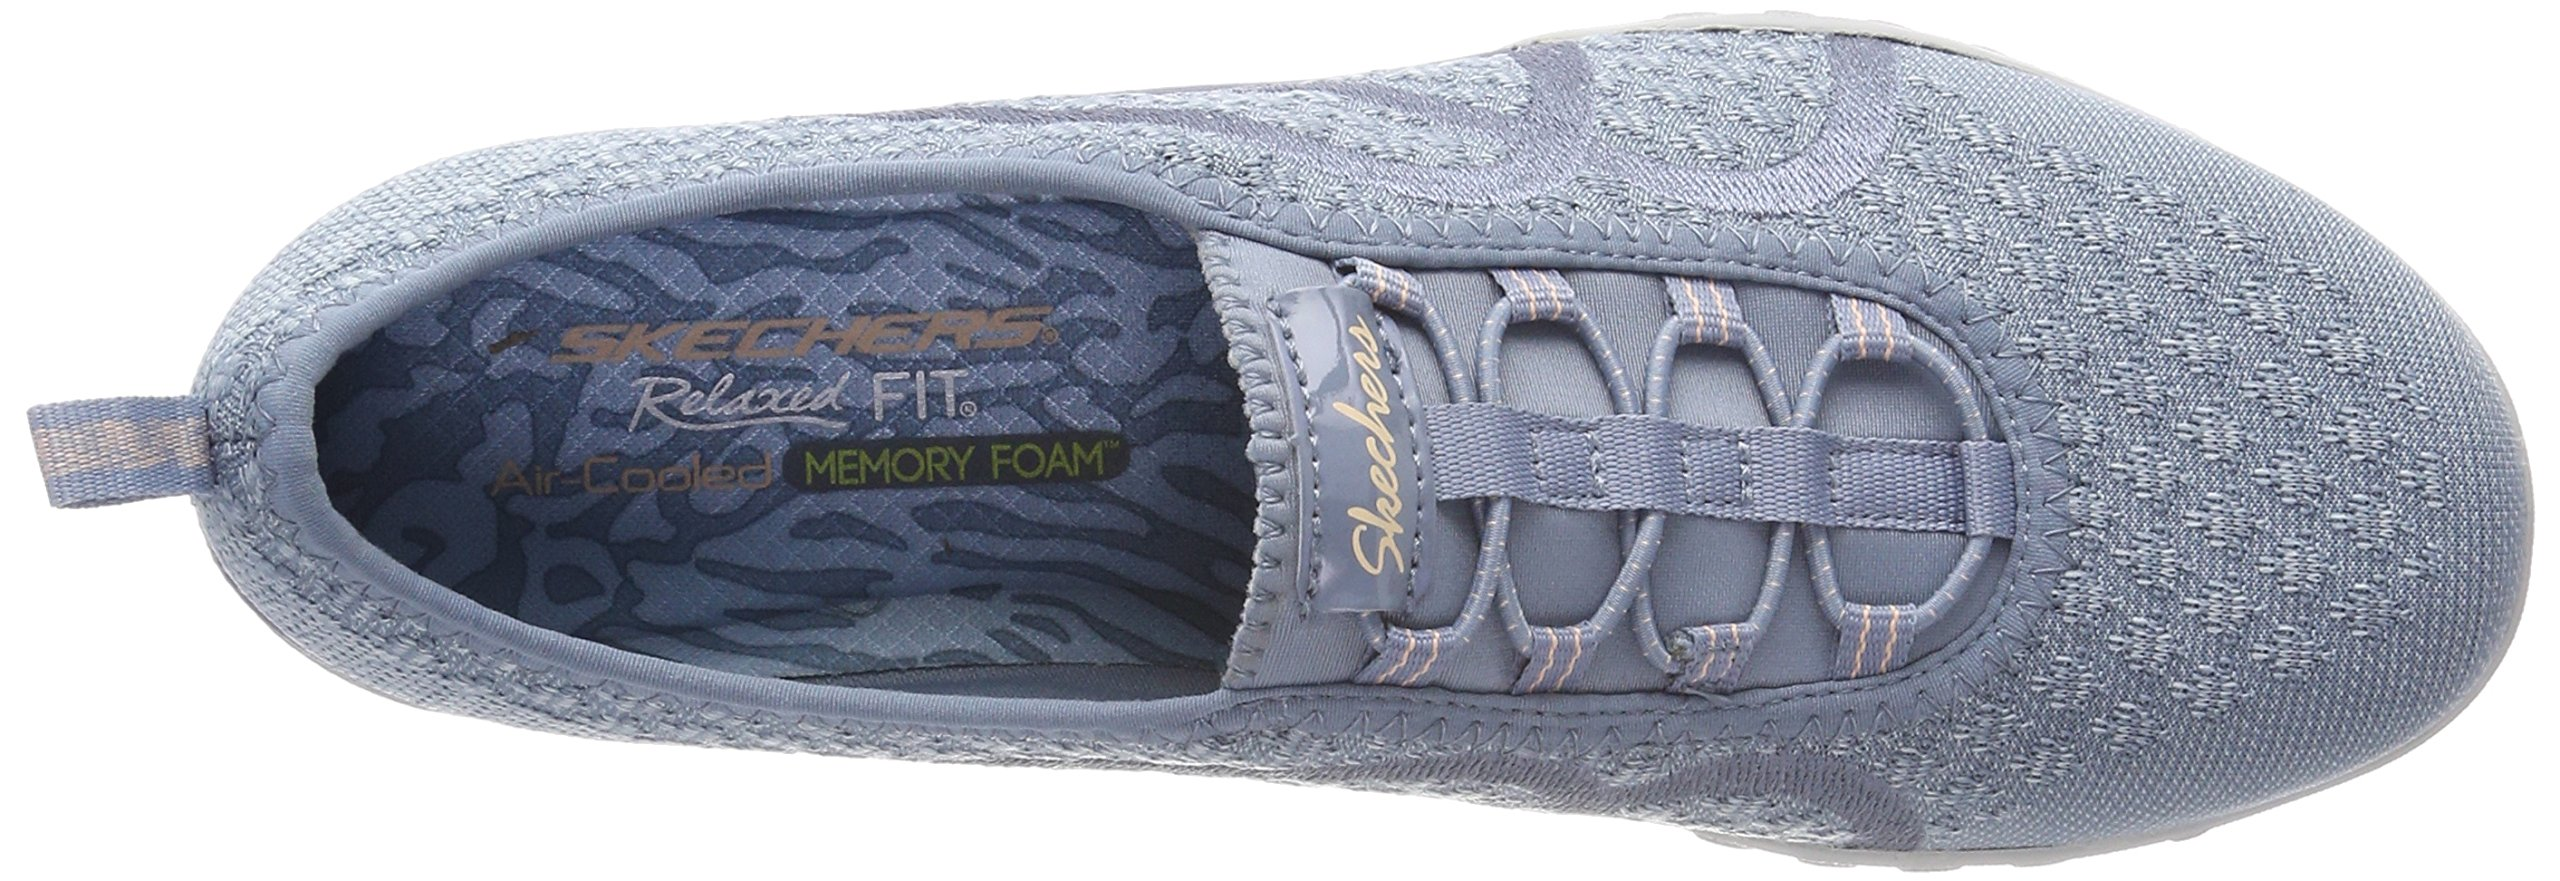 Skechers Relaxed Fit Breathe Easy Fortune Knit Womens Bungee Sneakers Blue 8 by Skechers (Image #7)